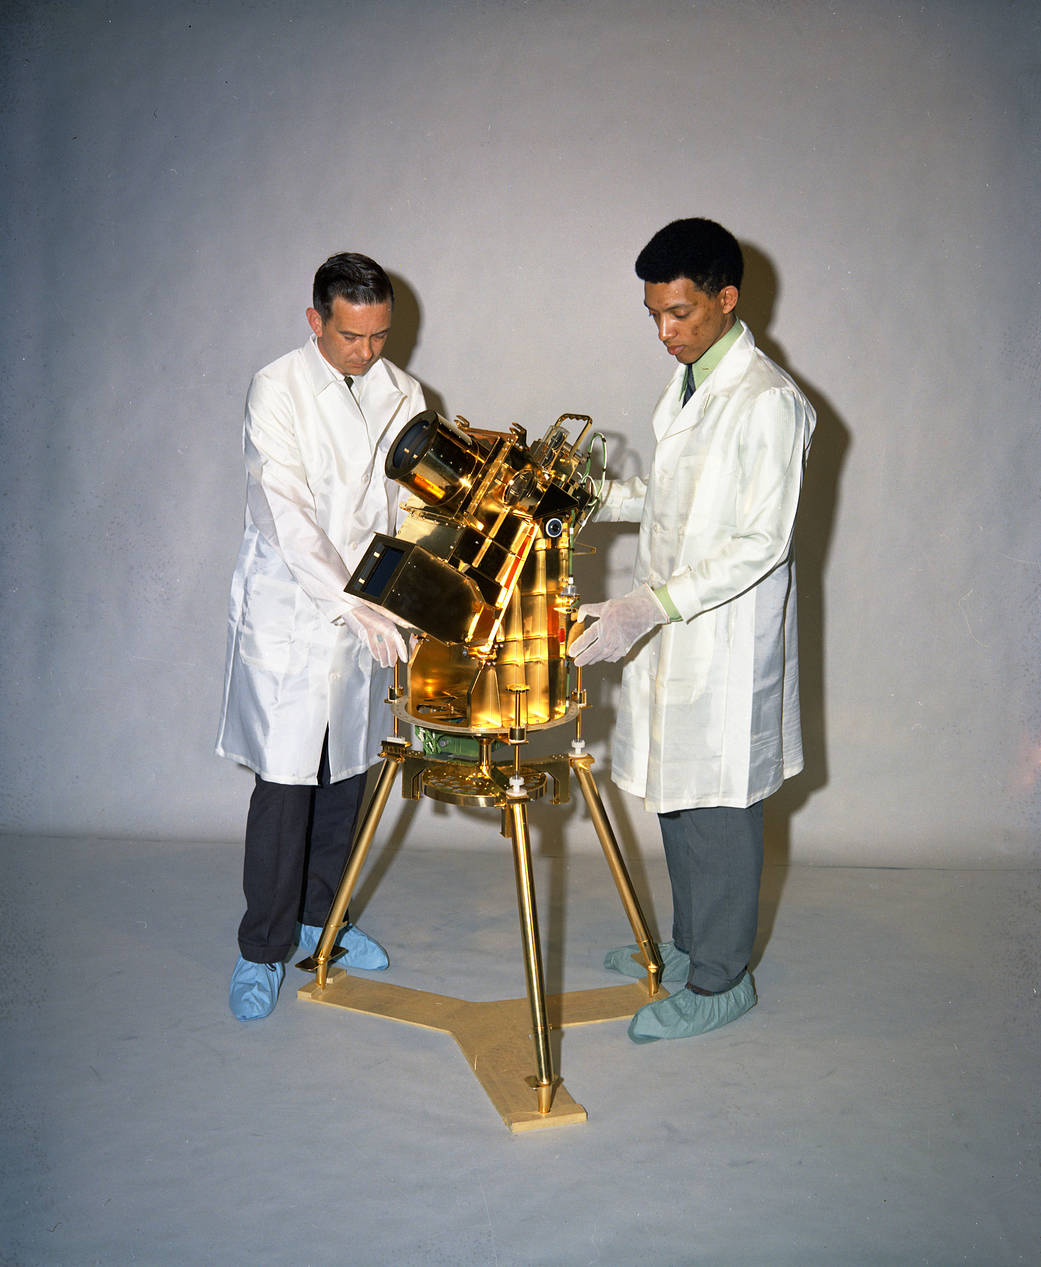 Dr. George Carruthers at right and William Conway with small gold-plated science instrument on tripod